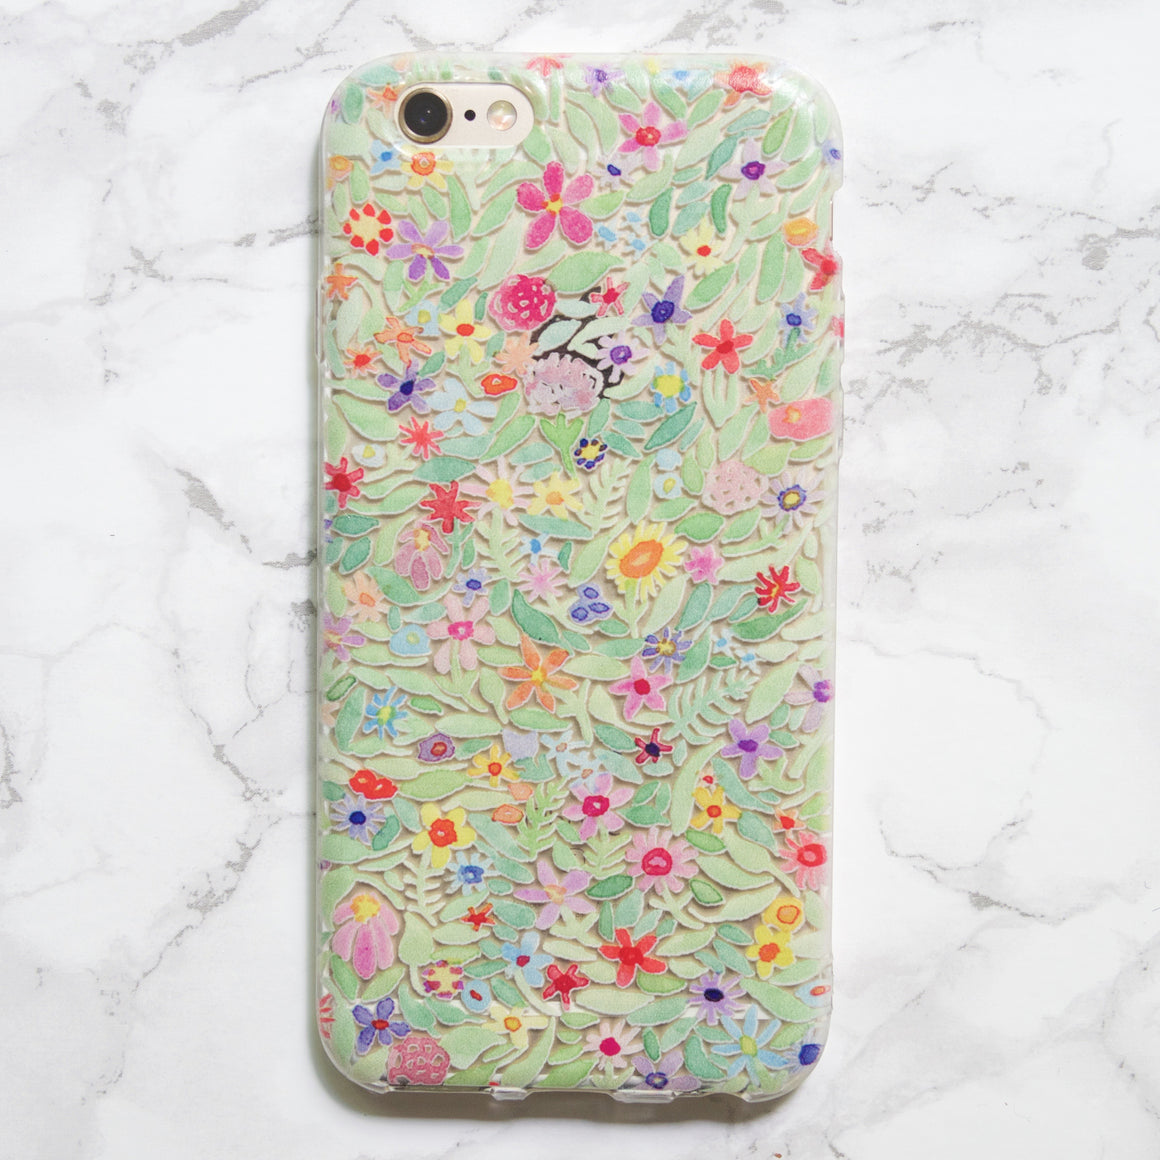 iPhone 6 Case - Limited Designs